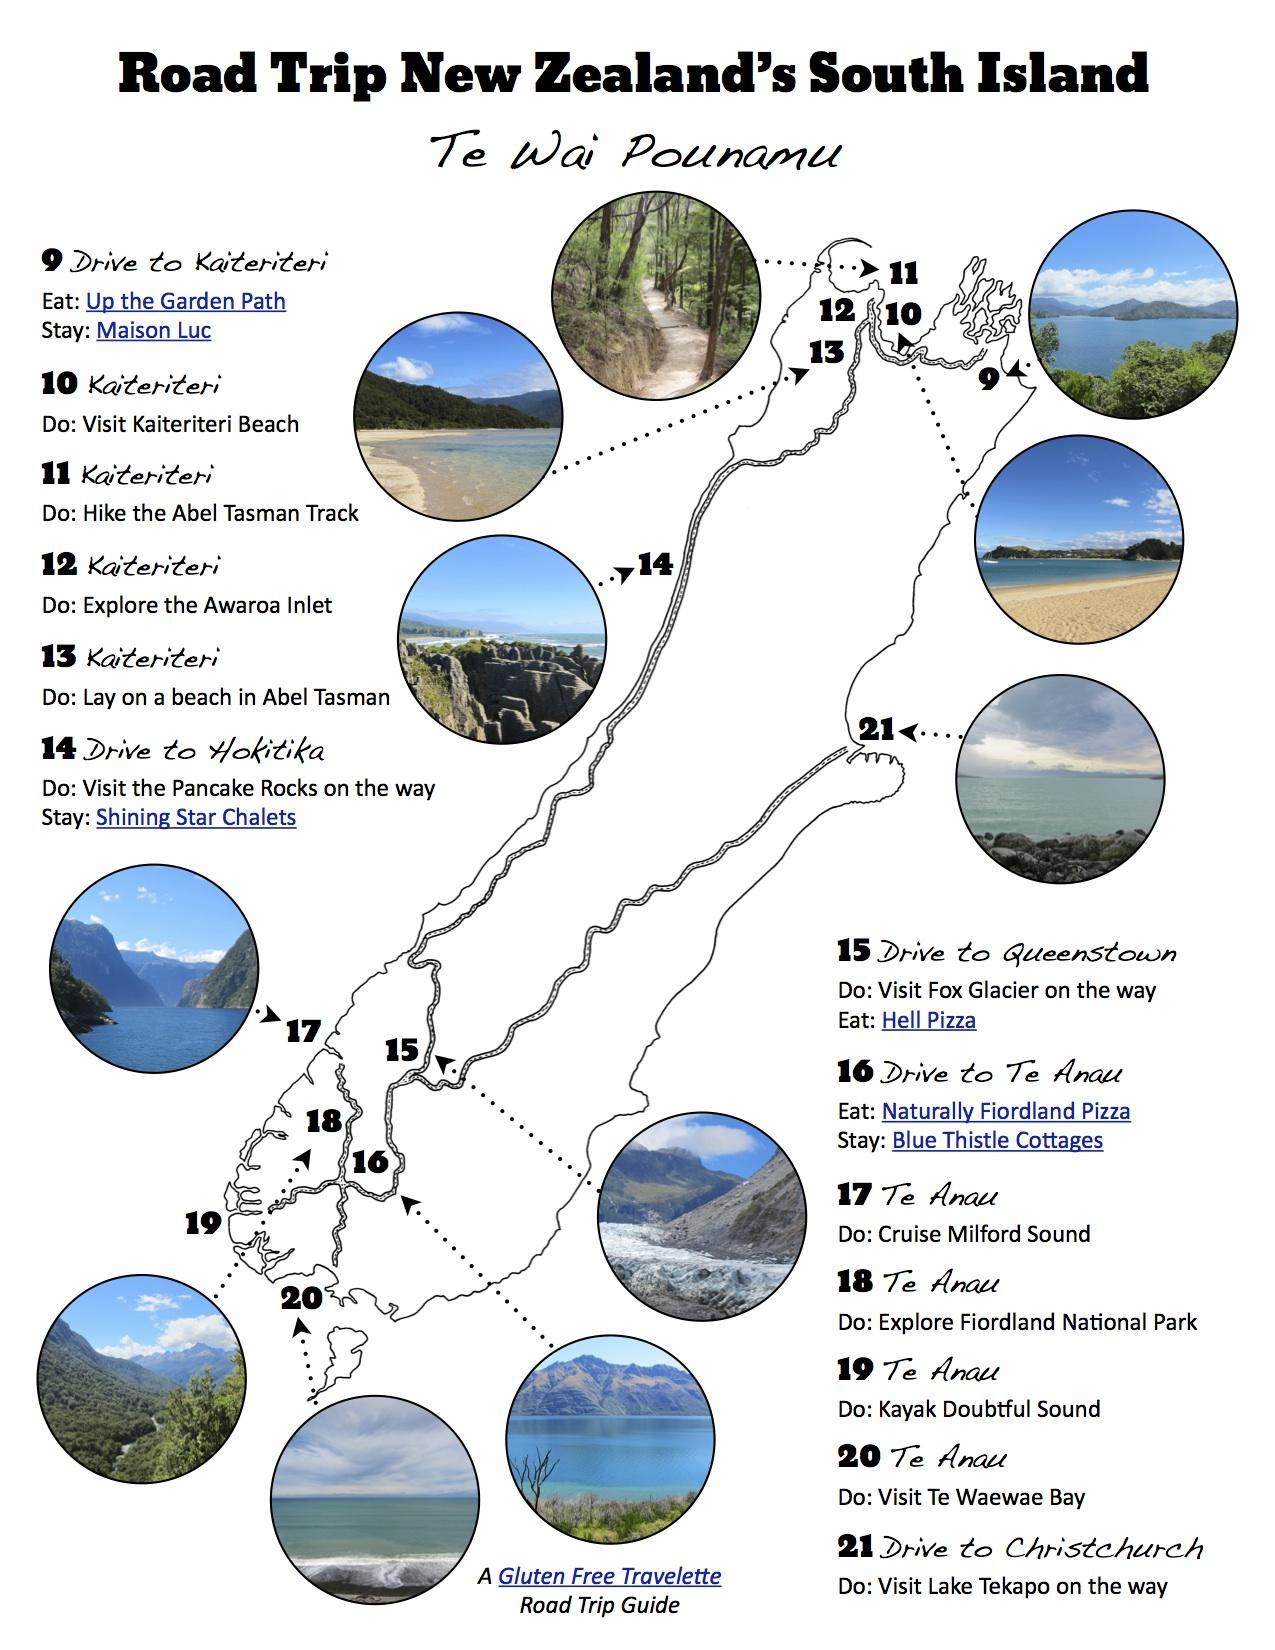 Road Trip Guide to New Zealand - image 7 - student project